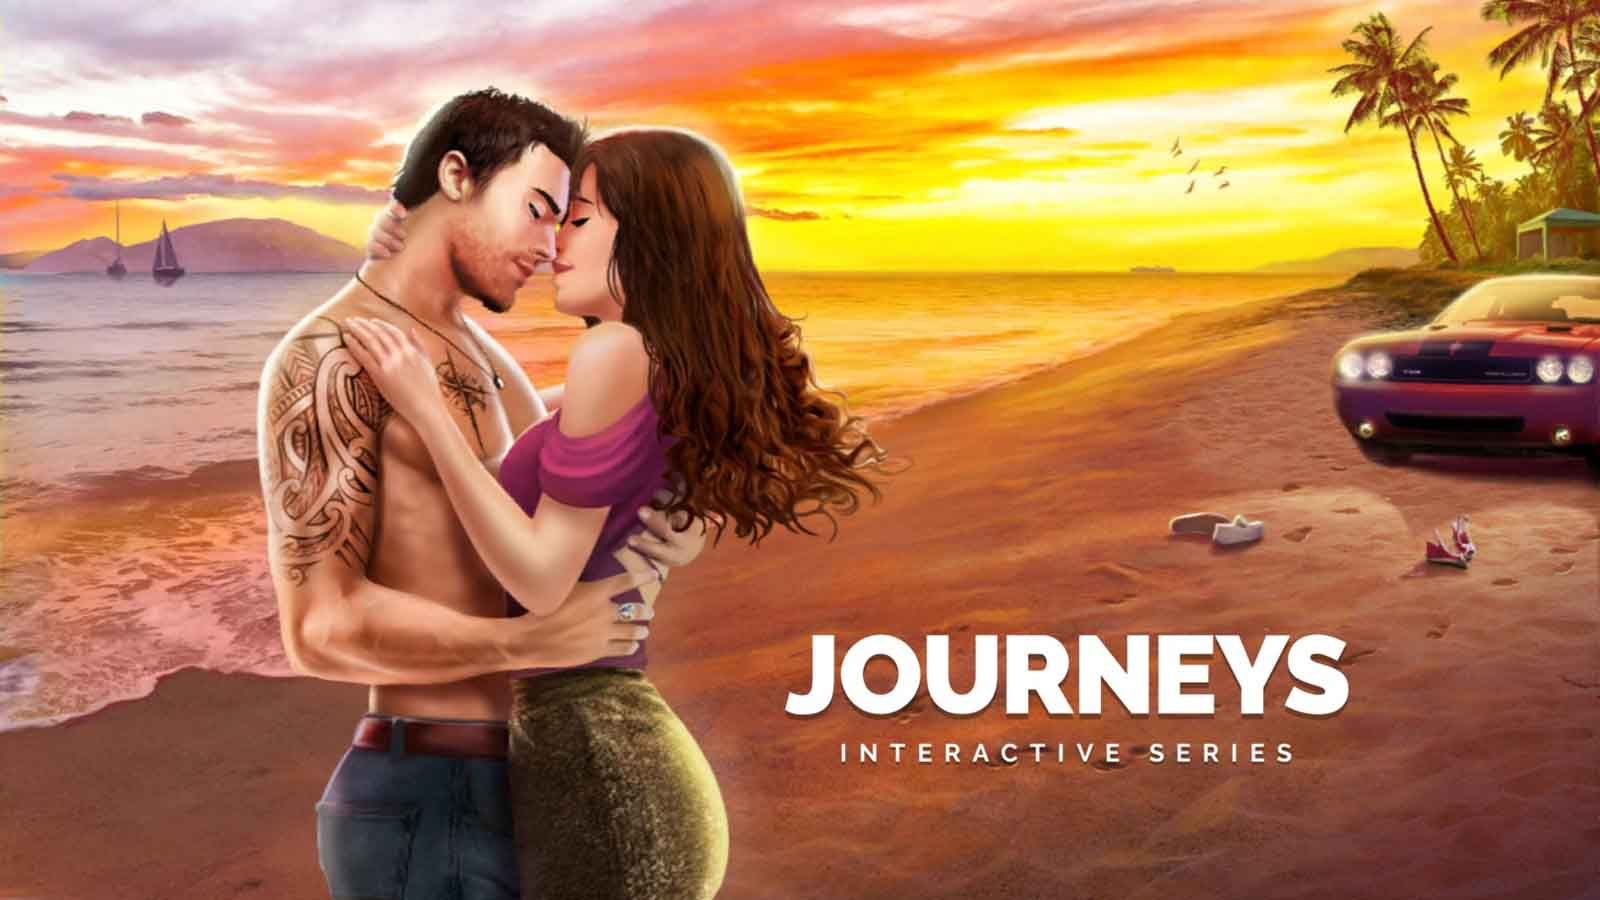 Journeys Interactive Series Mod apk